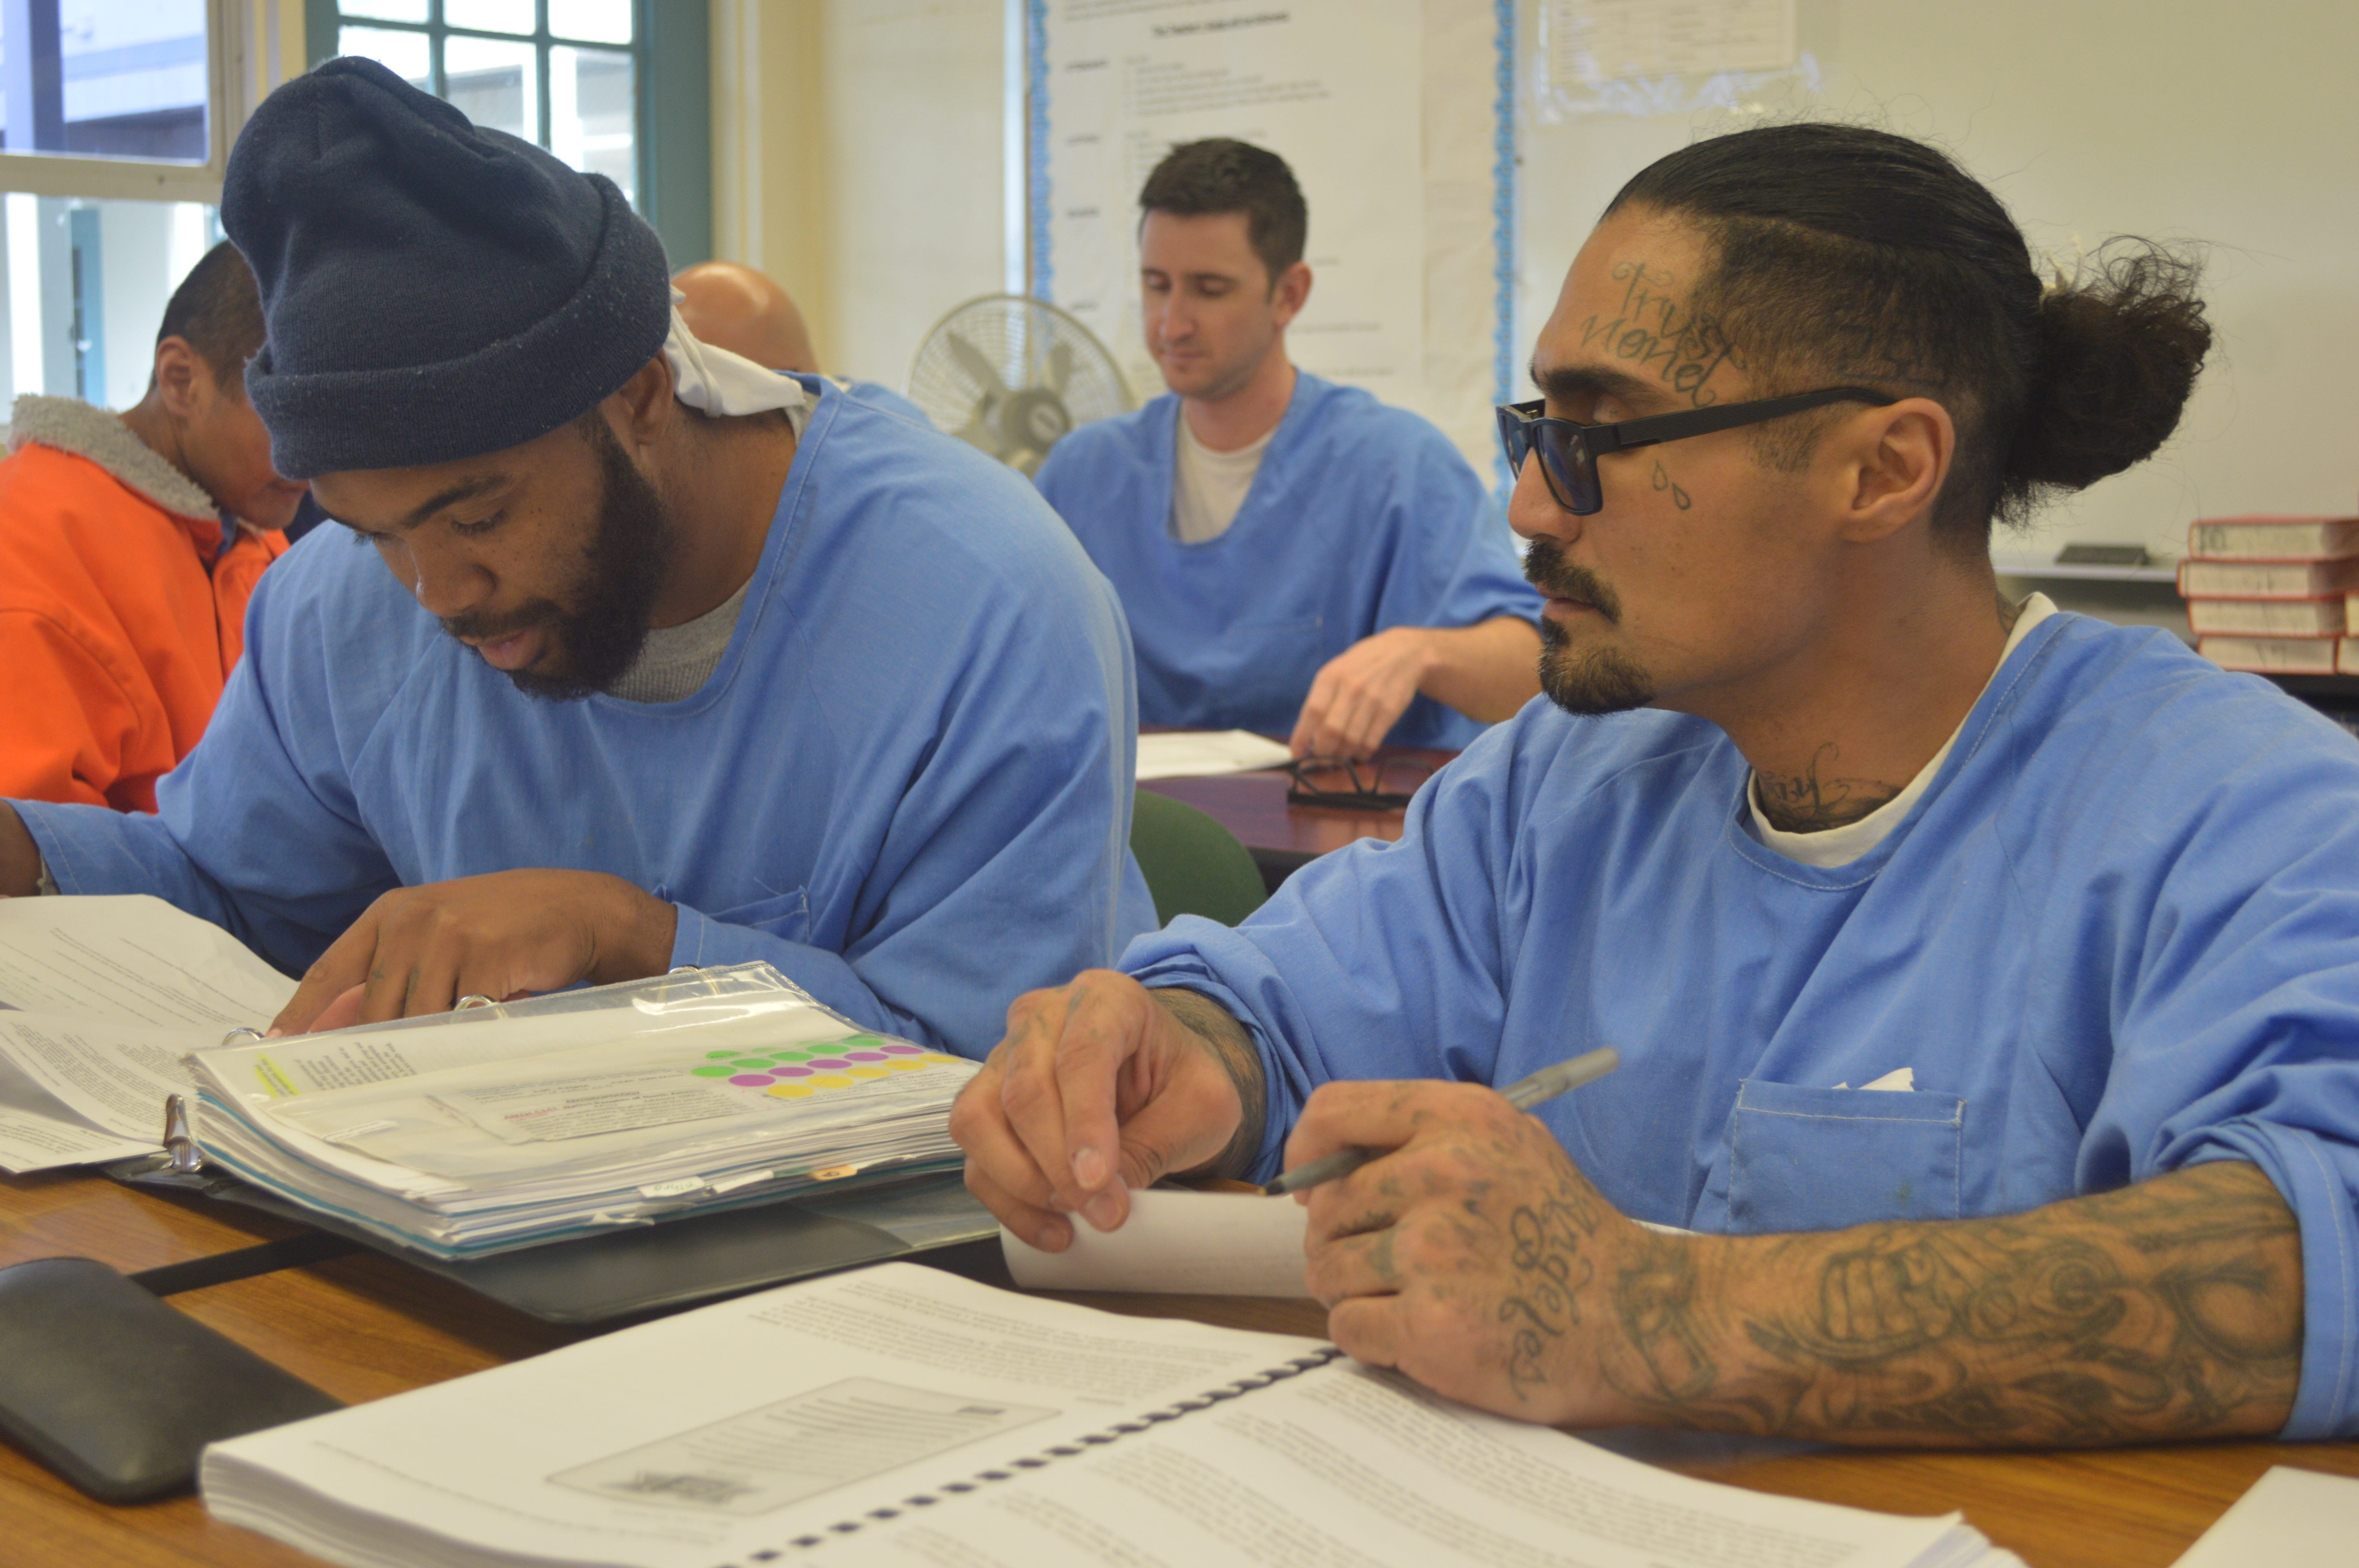 Students at Tehachapi prison work to create oral reports on how various communities in California enforce the three strikes law.